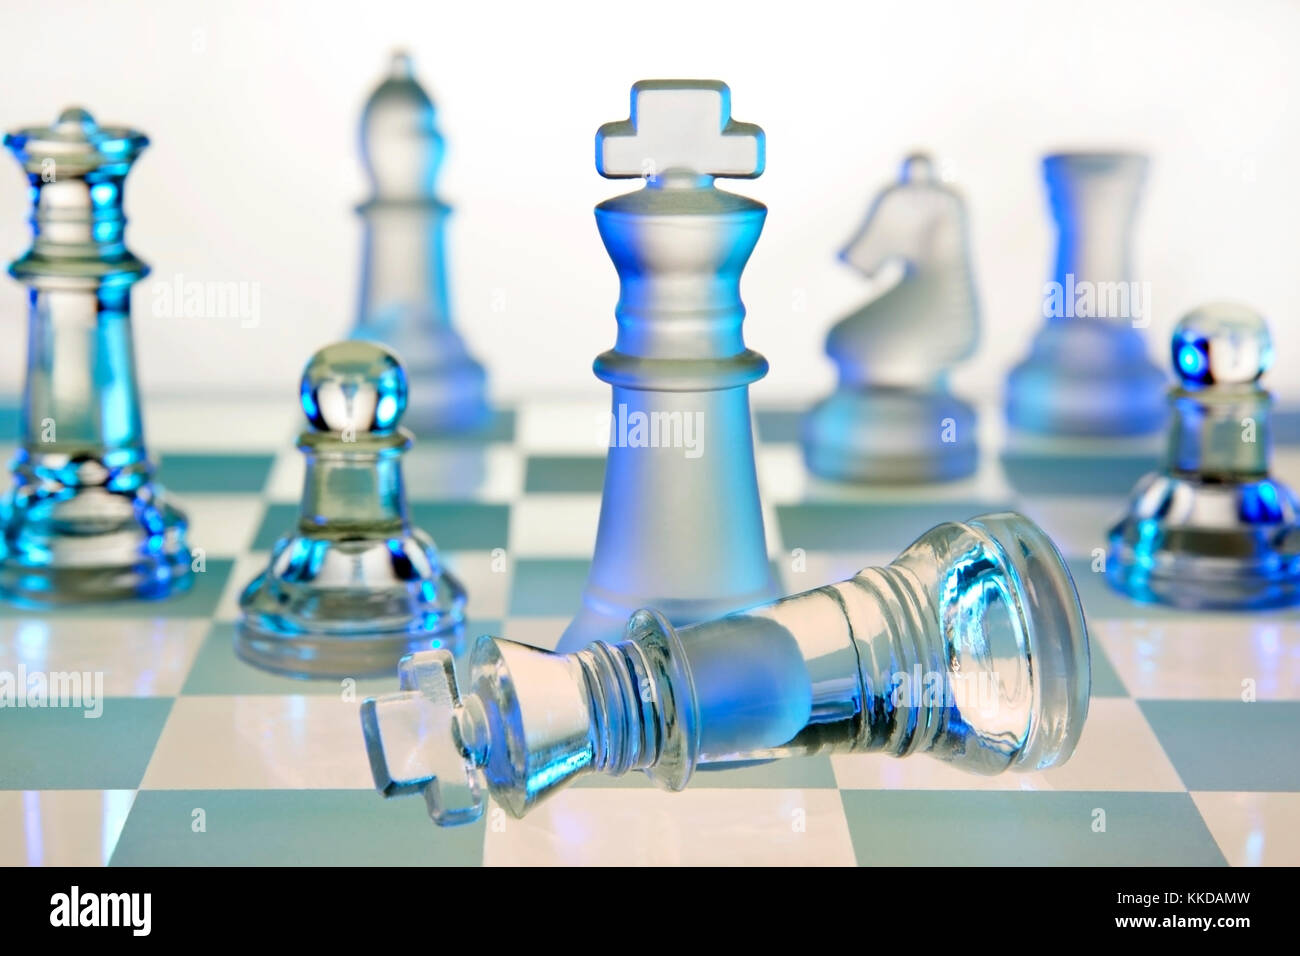 Chess - a board game of strategic skill for two players, played on a checkered board. Each player begins the game Stock Photo